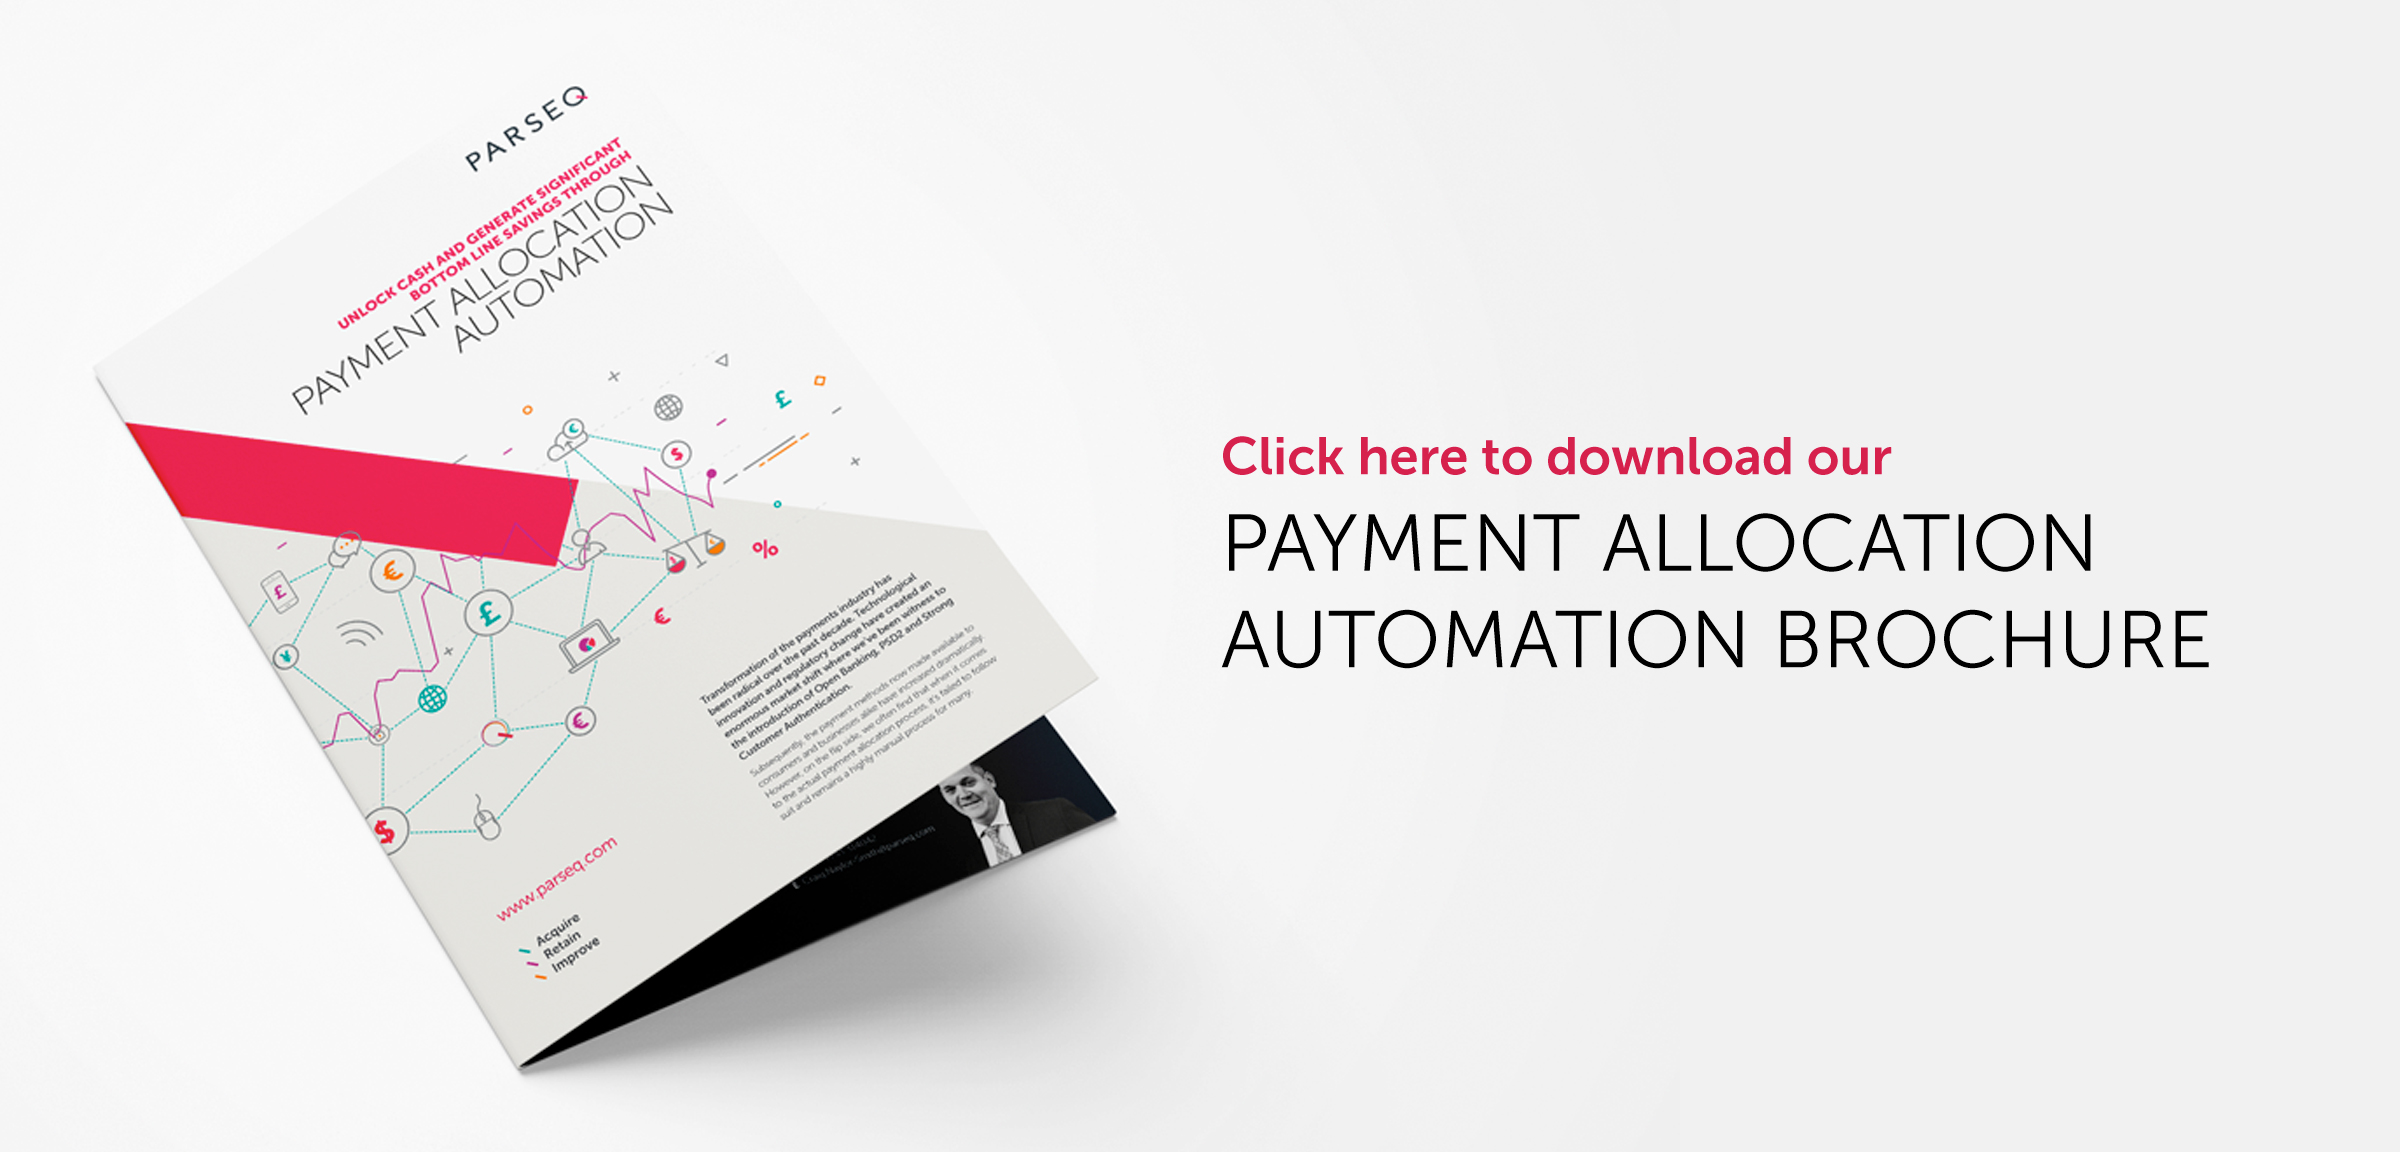 Payment allocation automation brochure